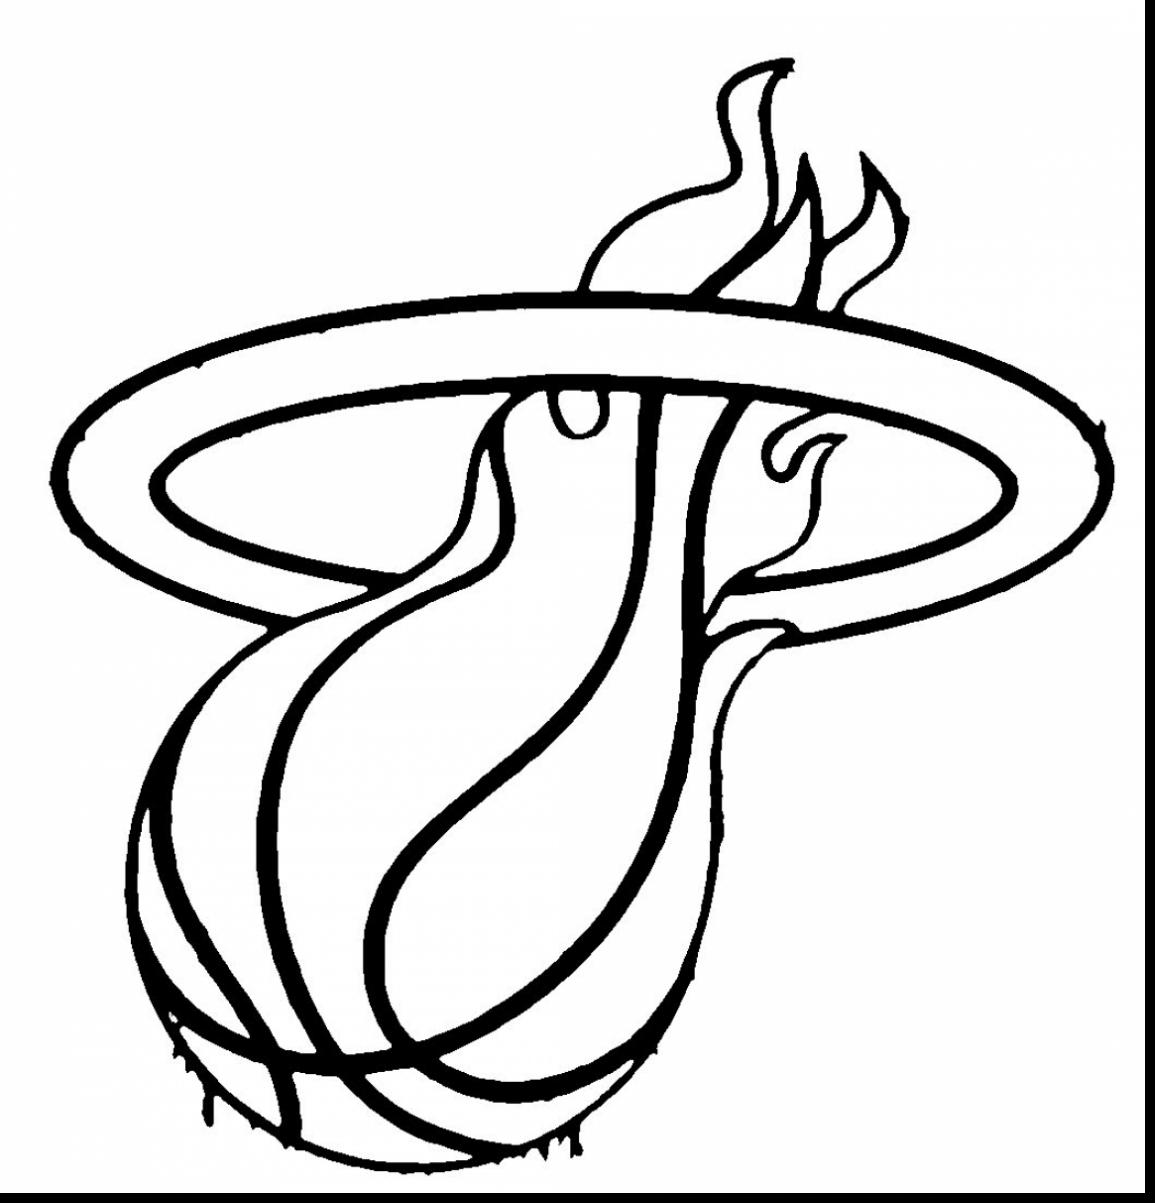 1155x1203 Miami Heat Coloring Pages To Print Coloring Page